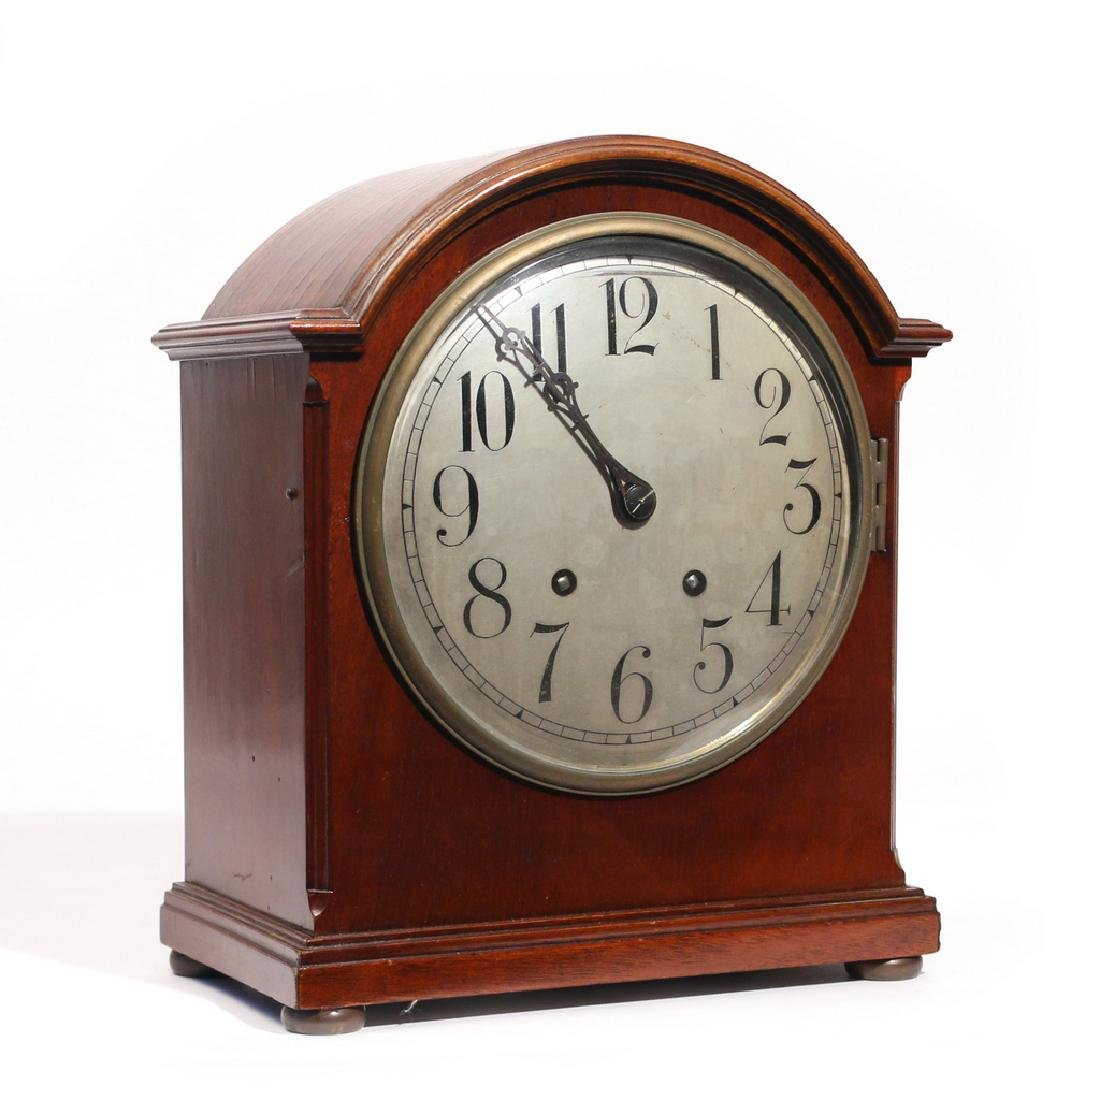 WINTERHALDER & HOFMEIER BRACKET CLOCK